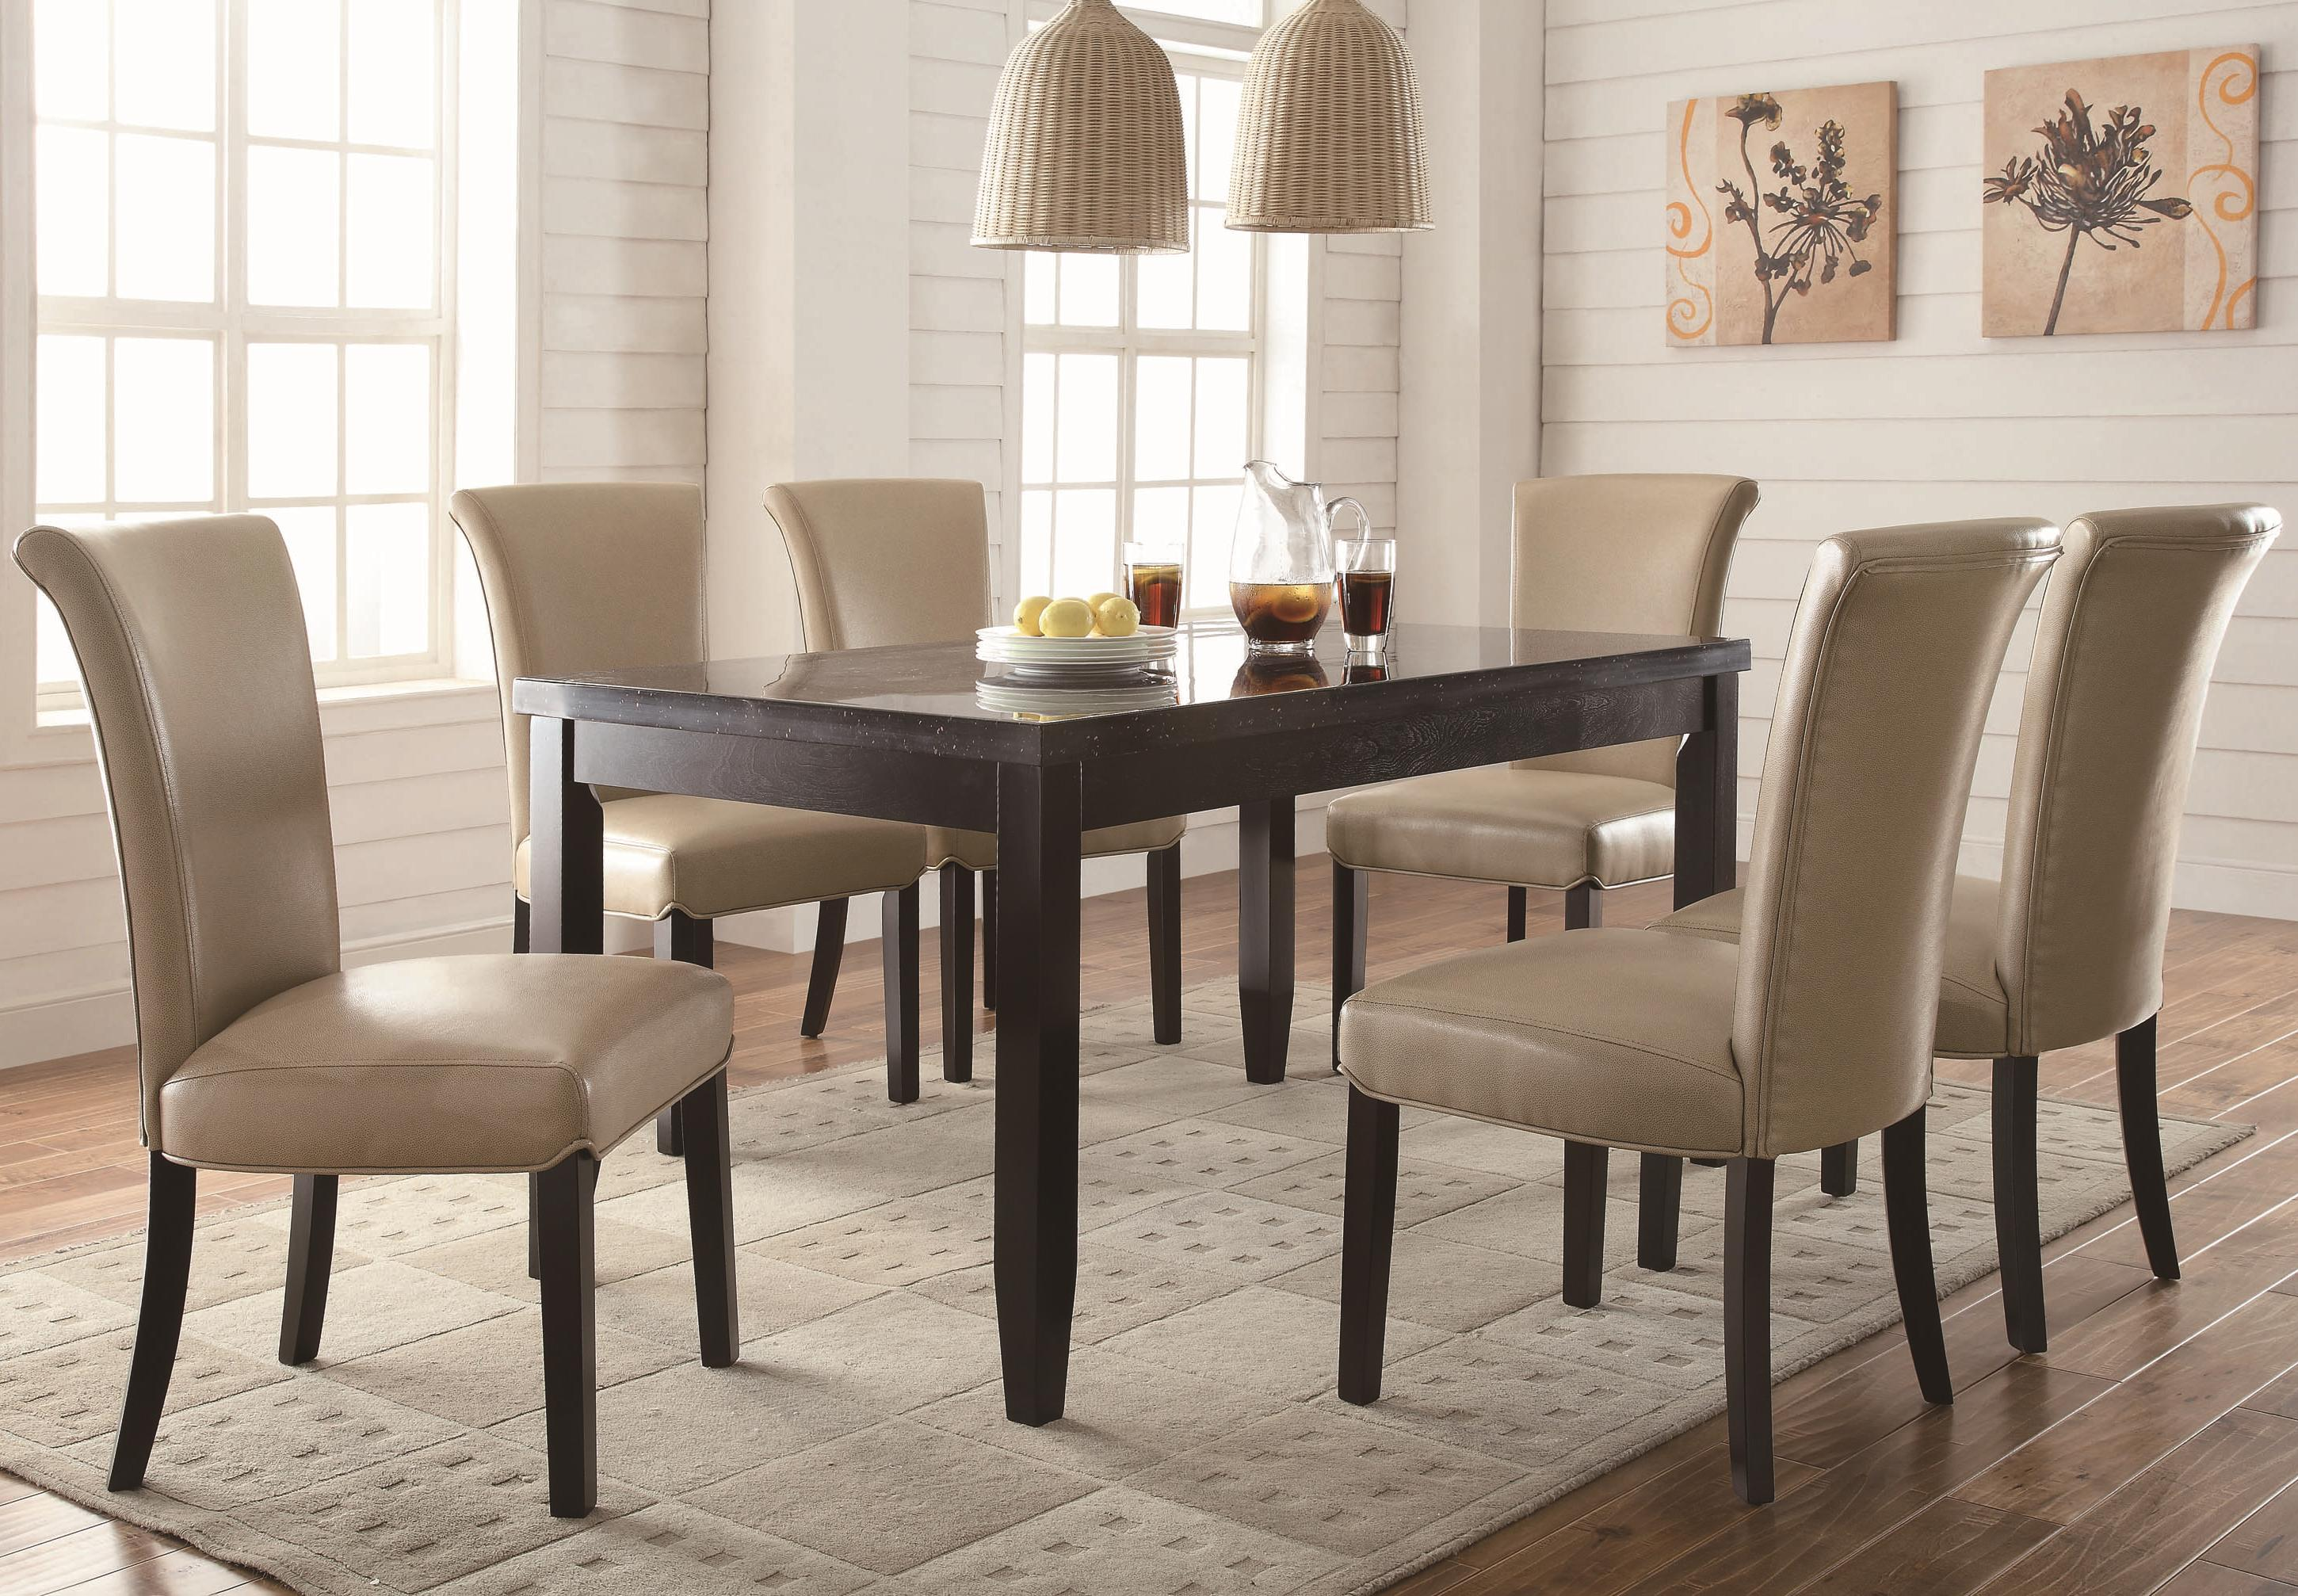 white back styles product piece set room with x hayneedle table master oak cfm double chairs home dining monarch